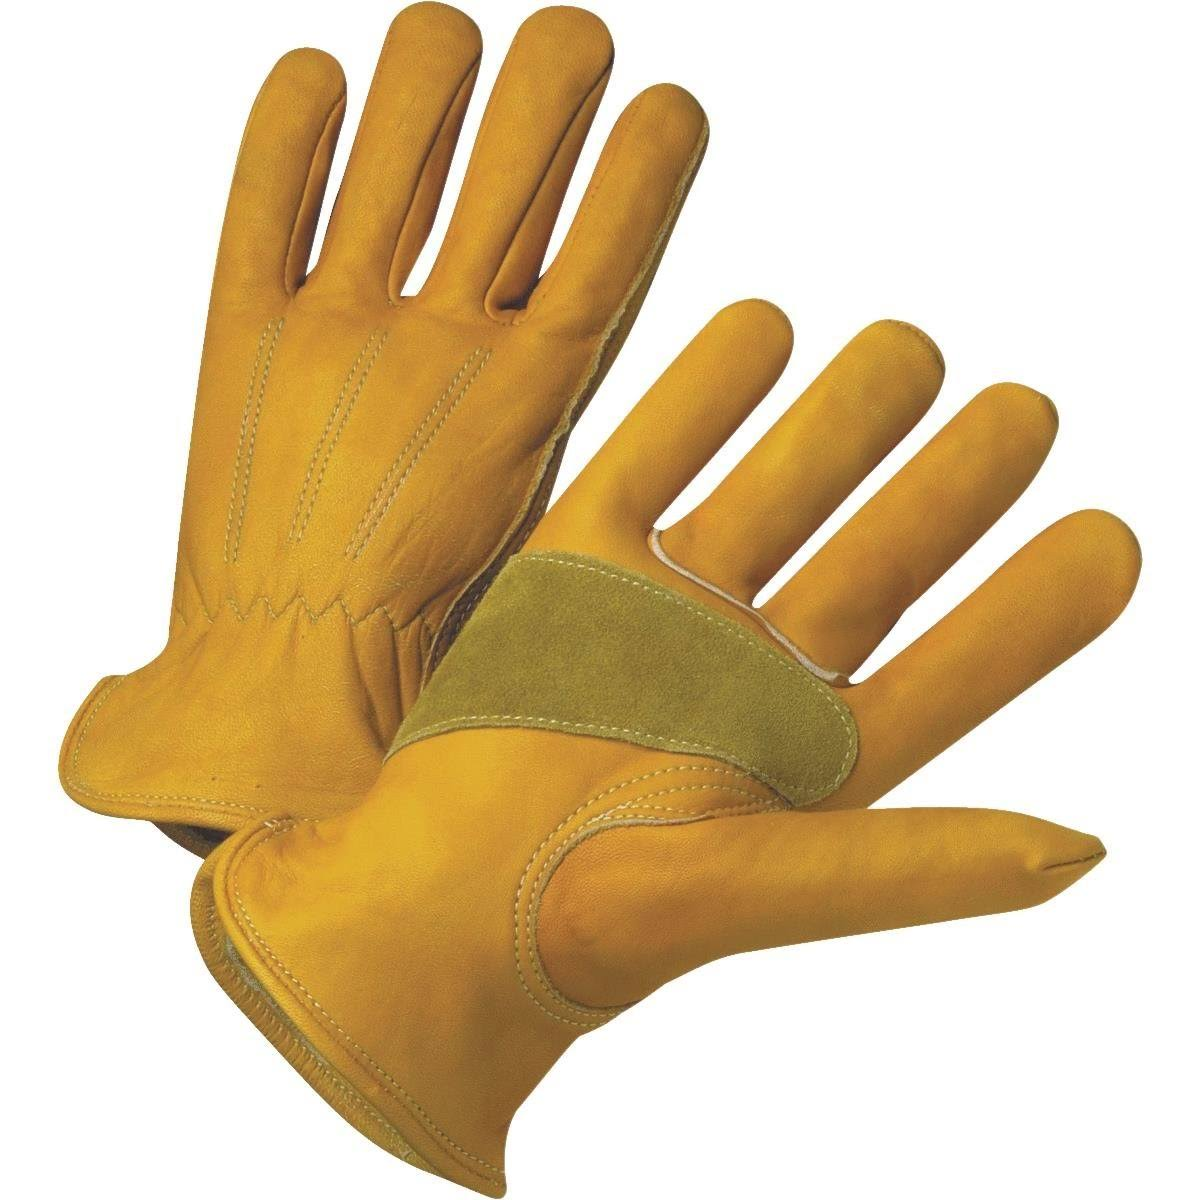 West Chester Protective Gear Grain Leather Glove - Small